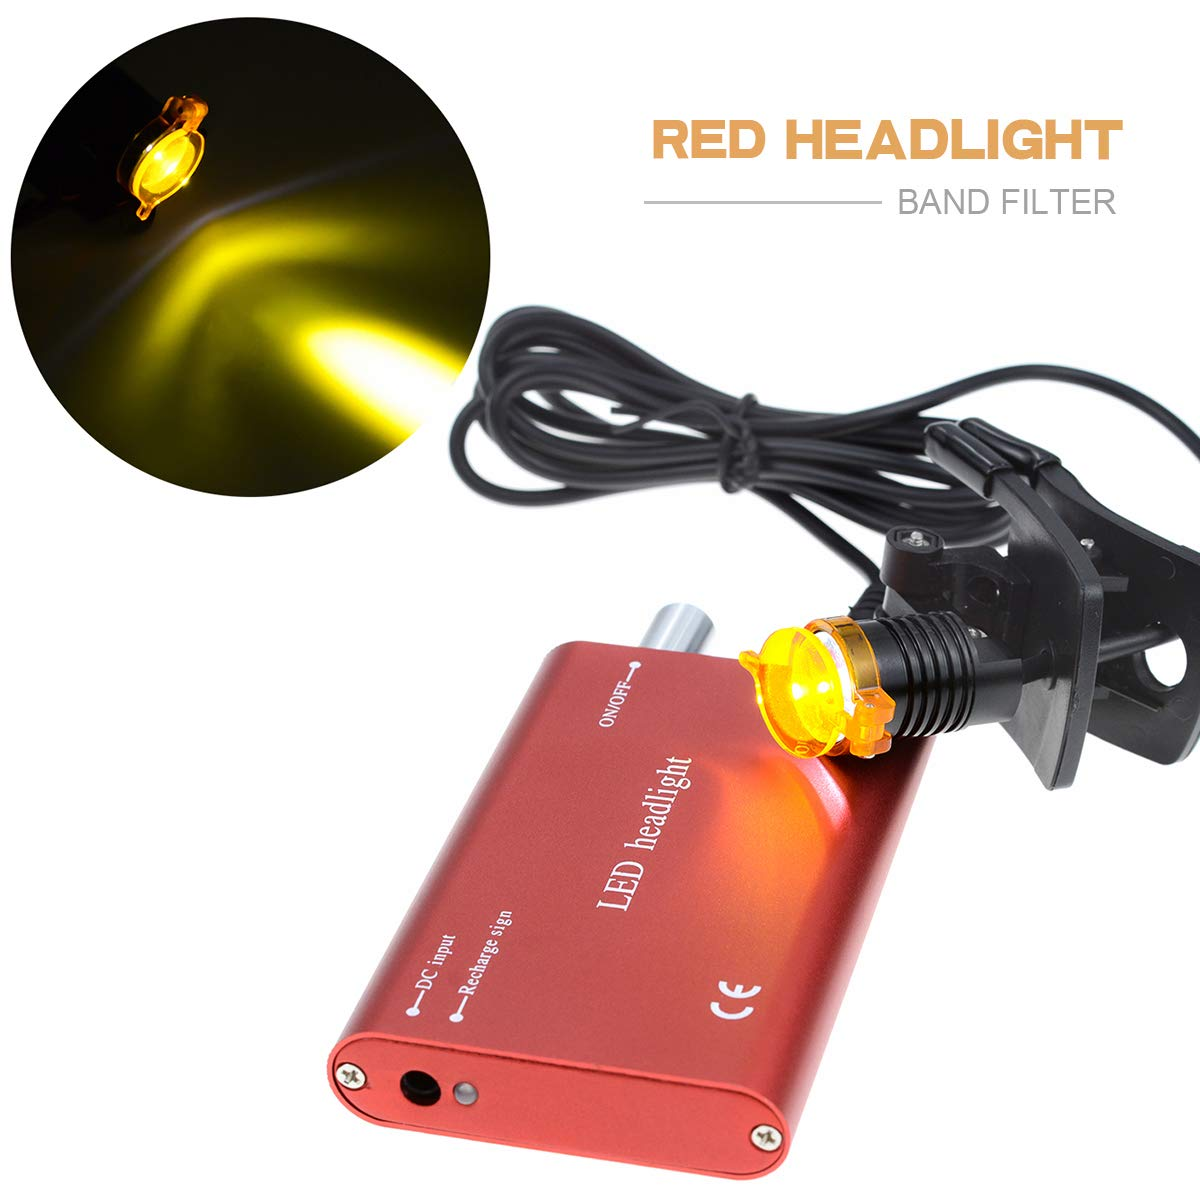 Aries Outlets 3W Portable LED Dental Headlight With Plastic Clip Filter Red) Head Light Headlamp for Dental Surgical Medical Binocular Loupe with Bag